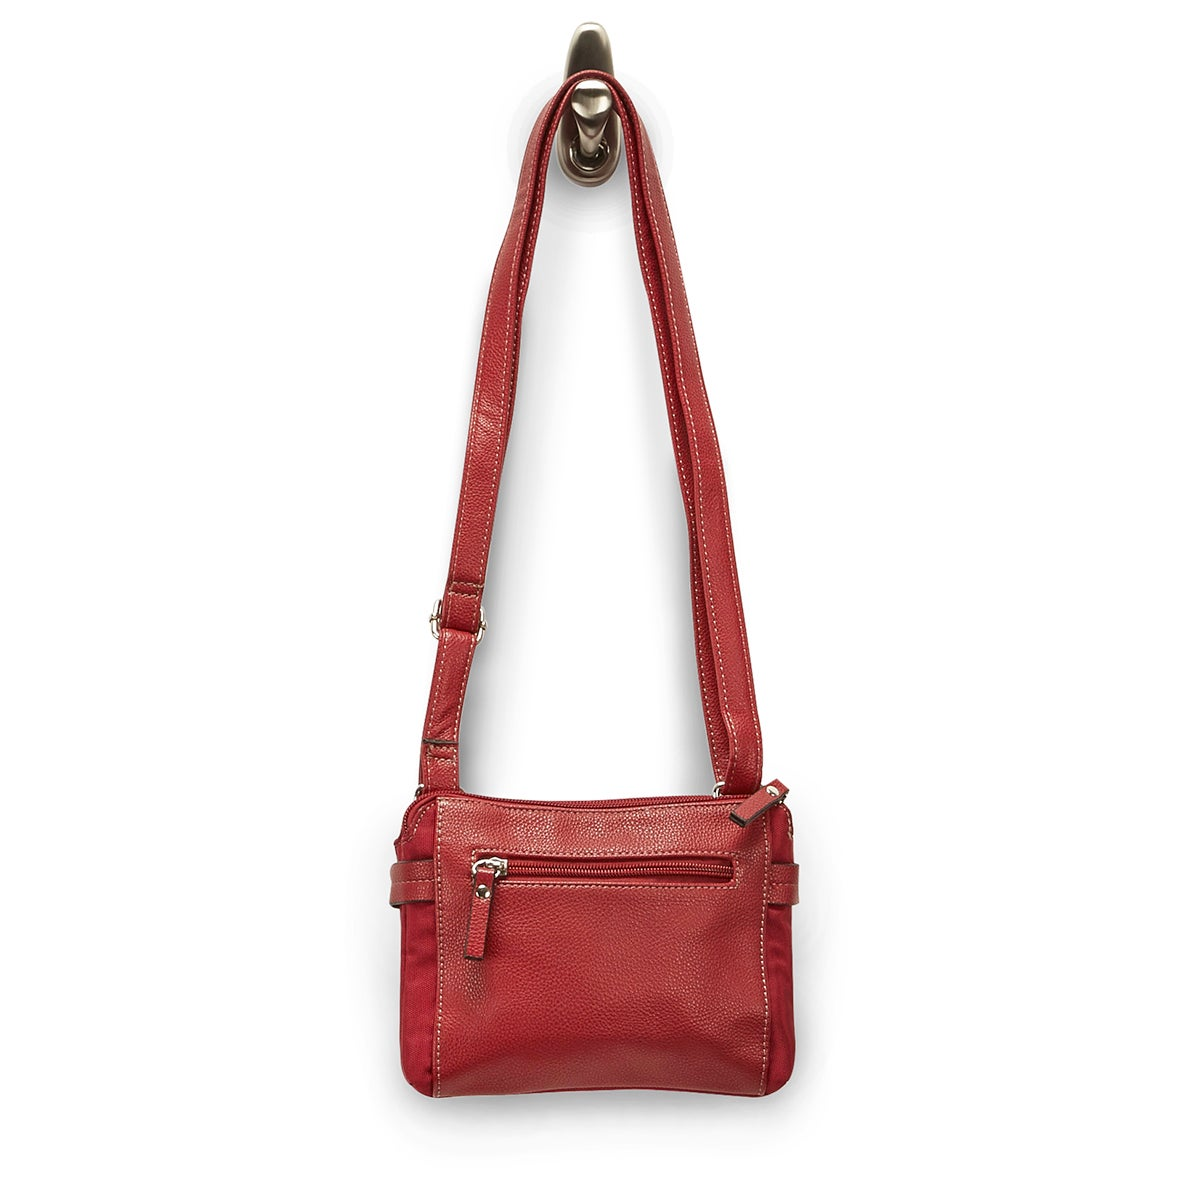 LdsRoots73 red 2 compartment crossbody